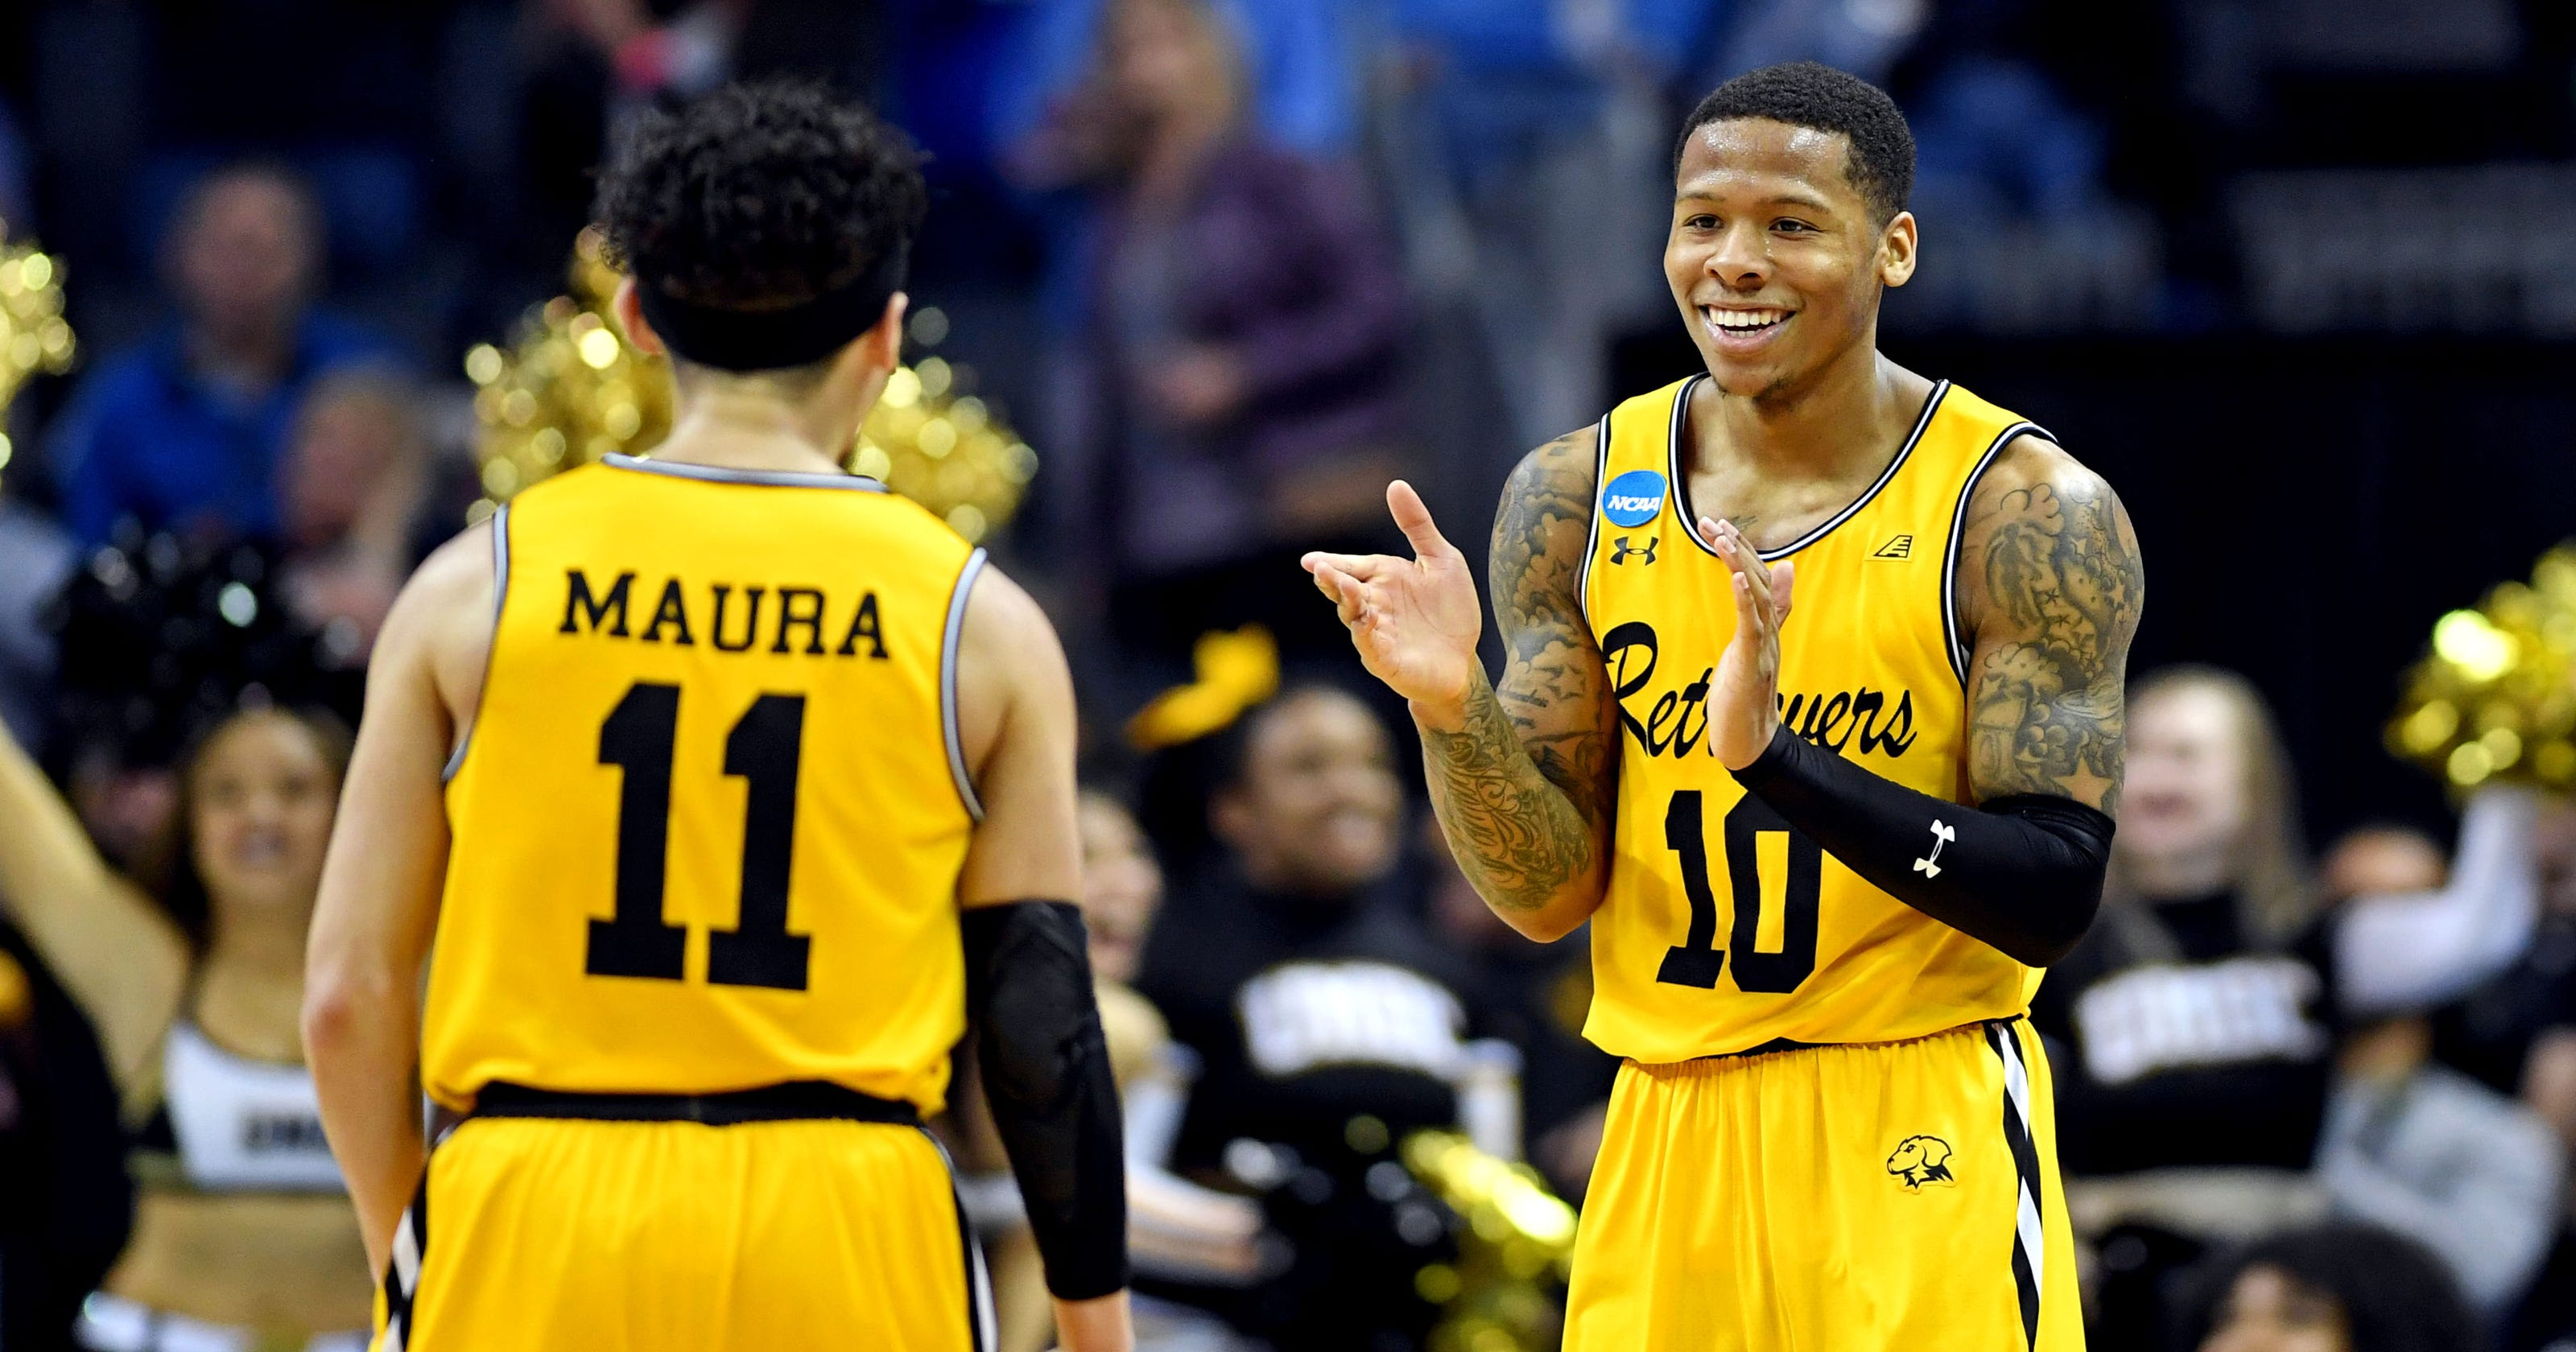 df5f8b39b41a UMBC s Jairus Lyles takes over as the new hero of March Madness